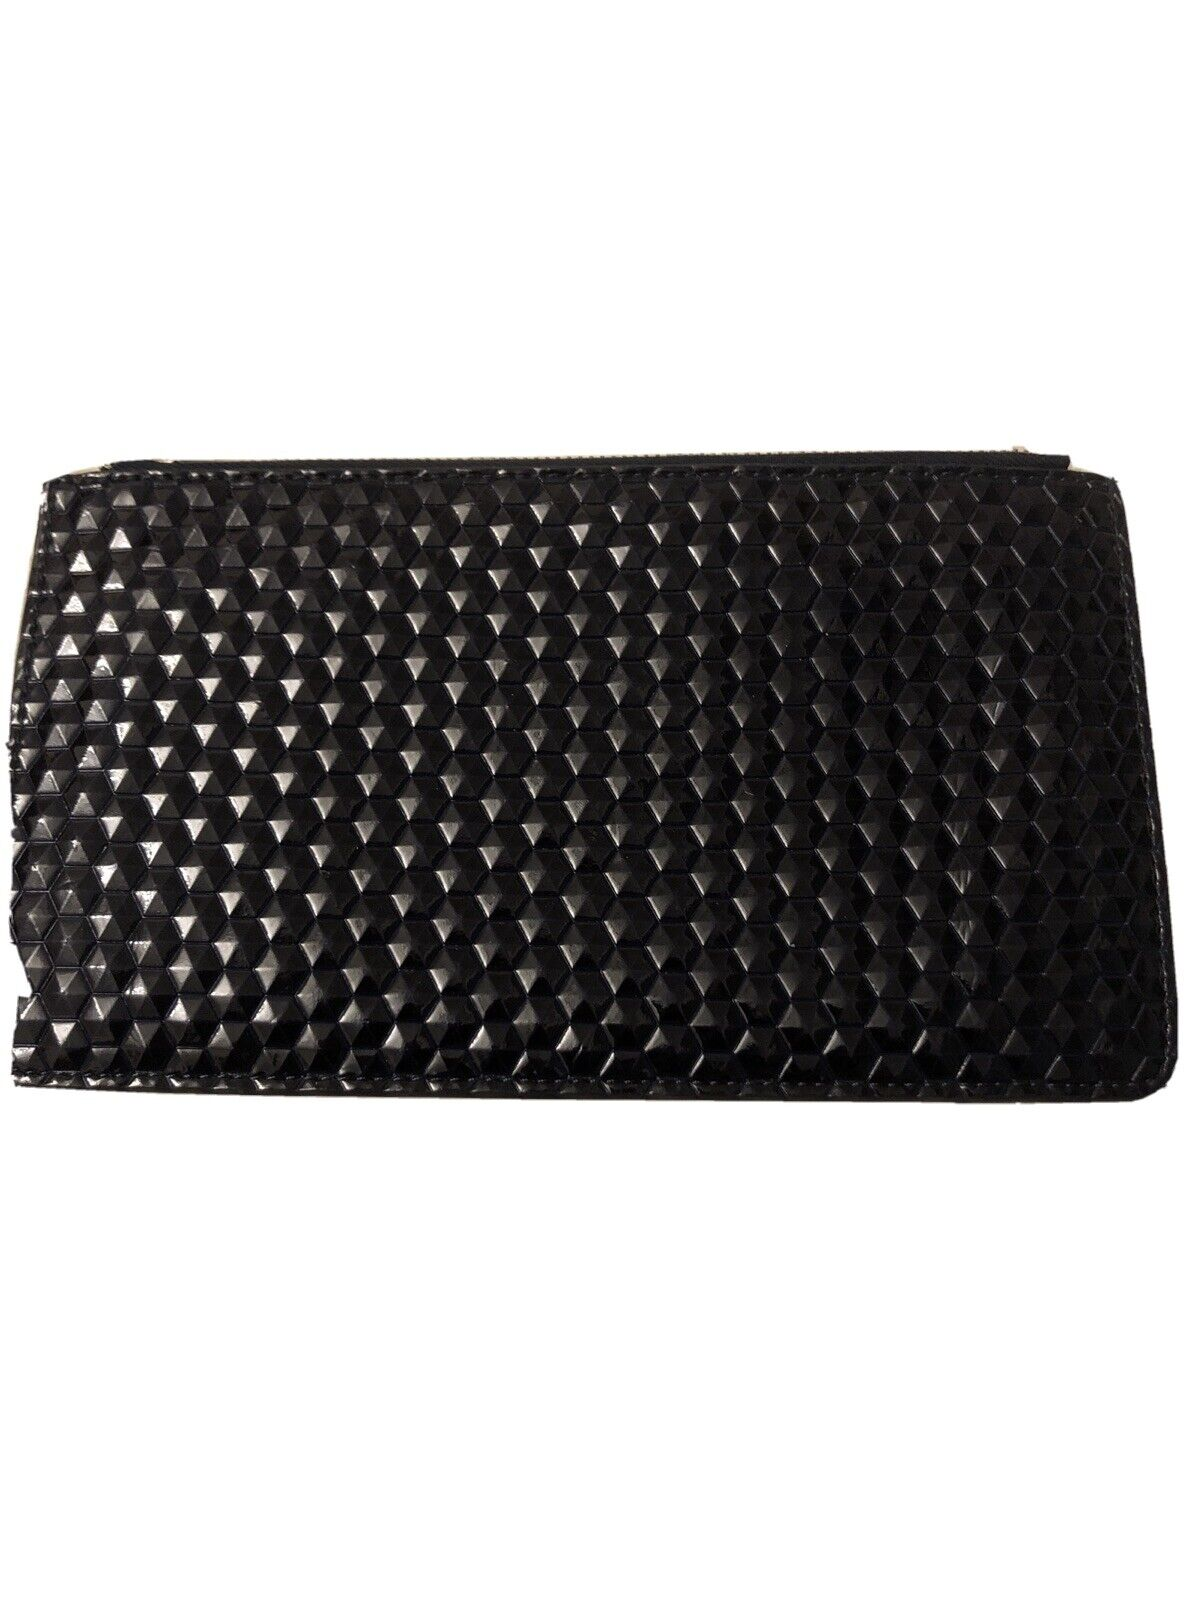 Oliver Bonas Zipped Wallet / Purse New , Quilted